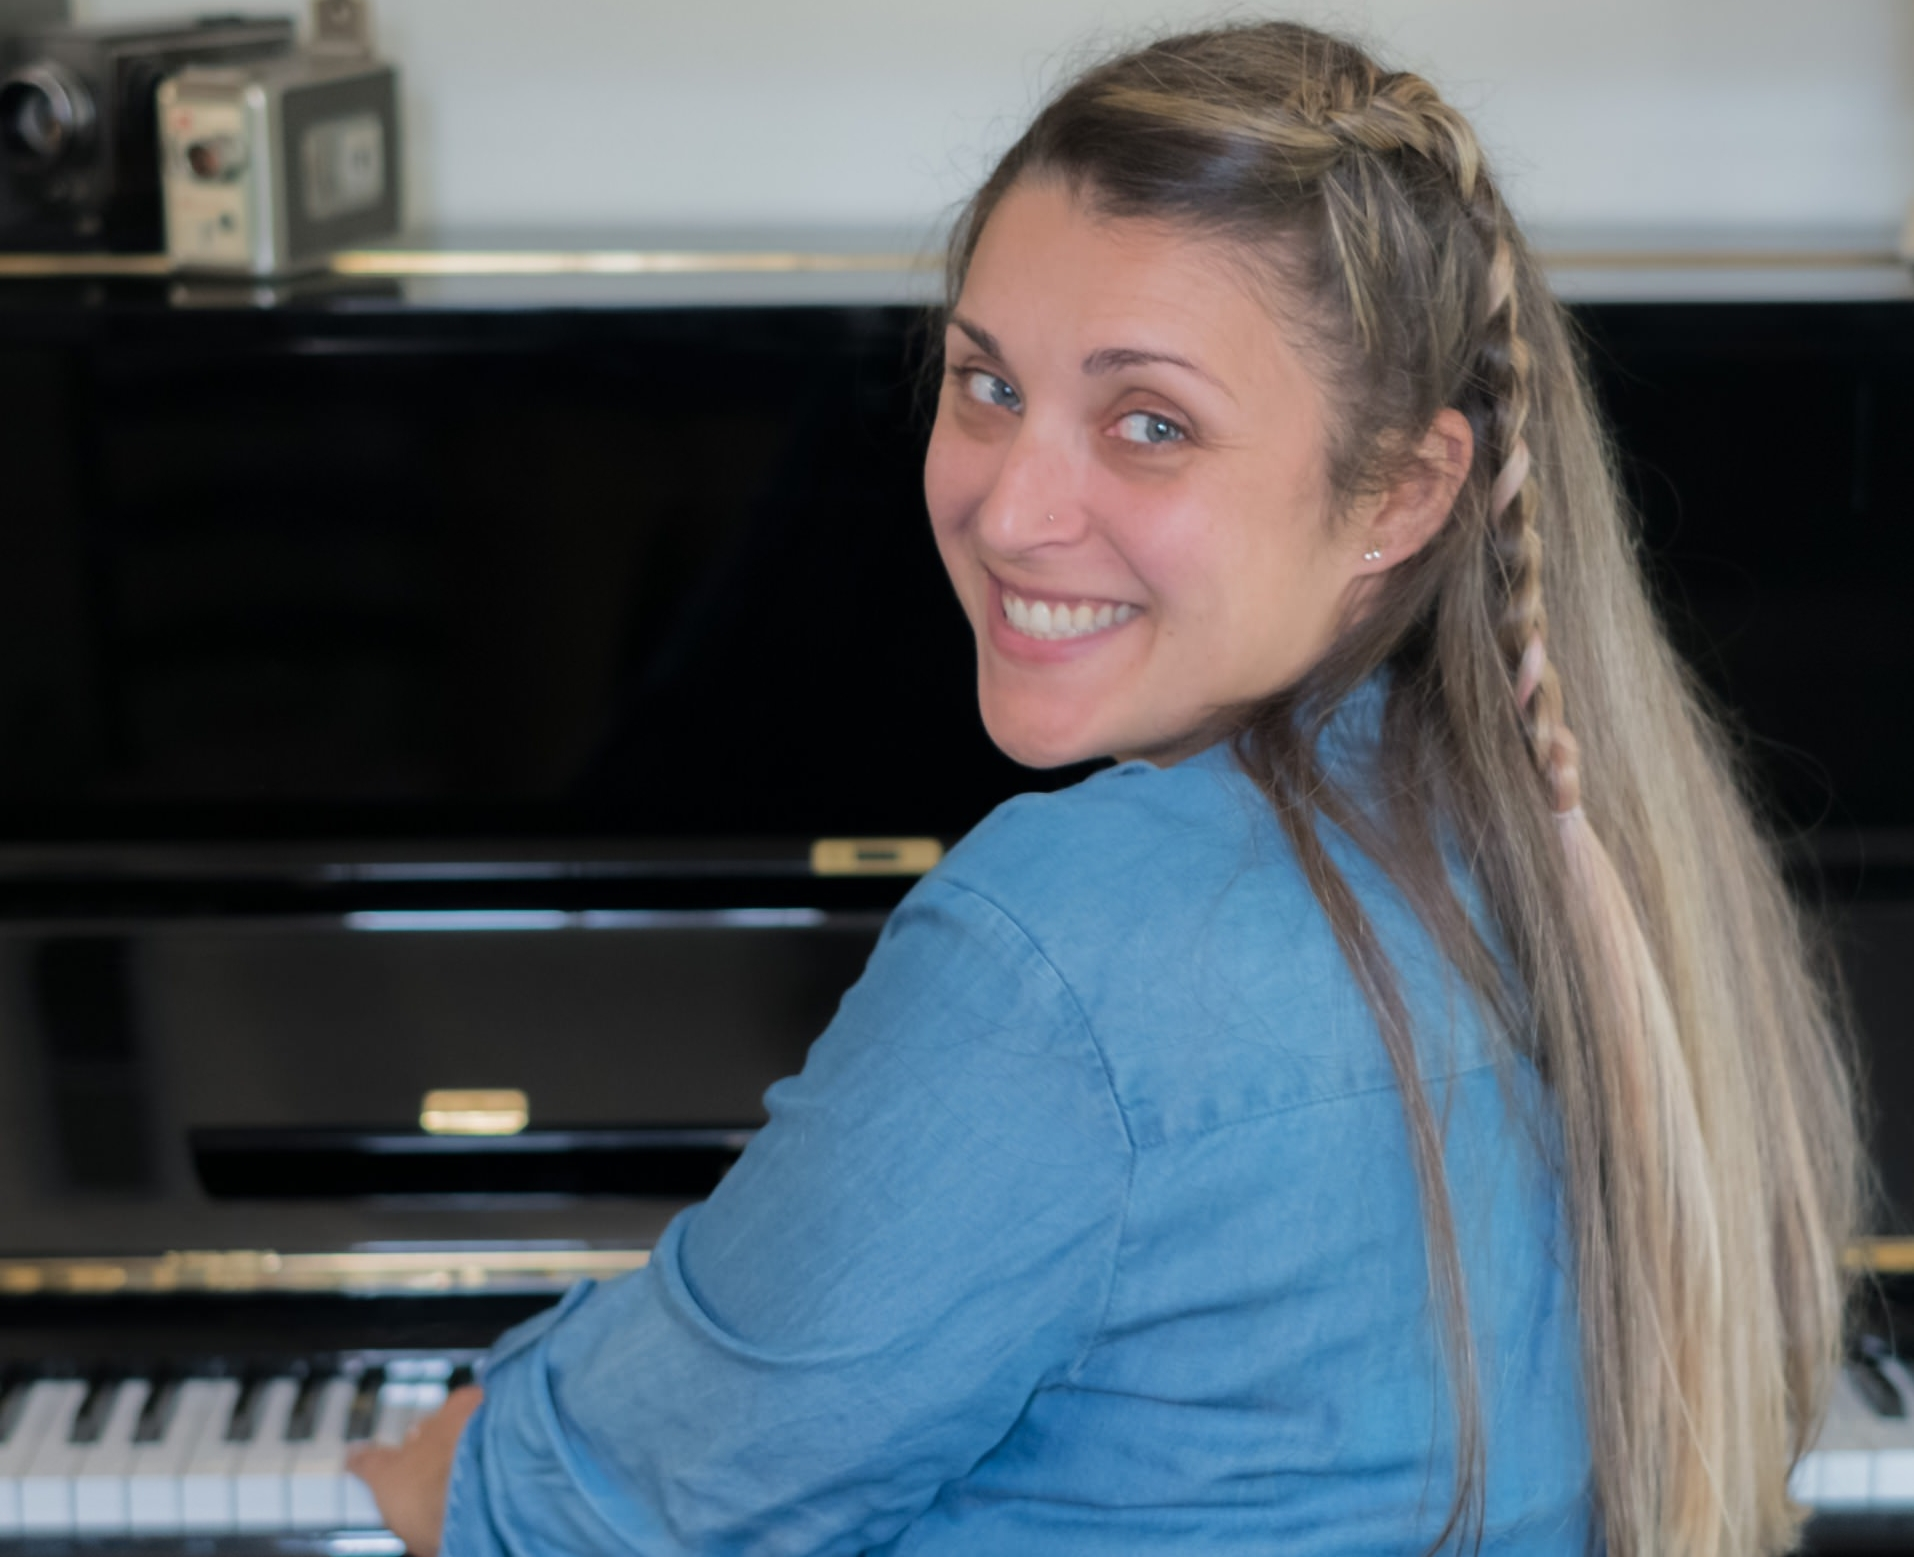 Frannie Whitaker, Certified Simply Music© teacher - Frannie began studying piano with Diane, many years ago, using the Simply Music© method. It was during her time at Roseville Piano Studio that she realized she wanted to teach the brilliant method that she was learning.Diane's plans to expand the studio included Frannie, so she pursued her teaching certification and jumped on board; she began teaching in January of 2012 and has not looked back.Frannie has remained an integral part of Roseville Piano Studio and has a deep appreciation for the ups and downs that come with learning to play the piano. After all, Frannie has been in the student's shoes!